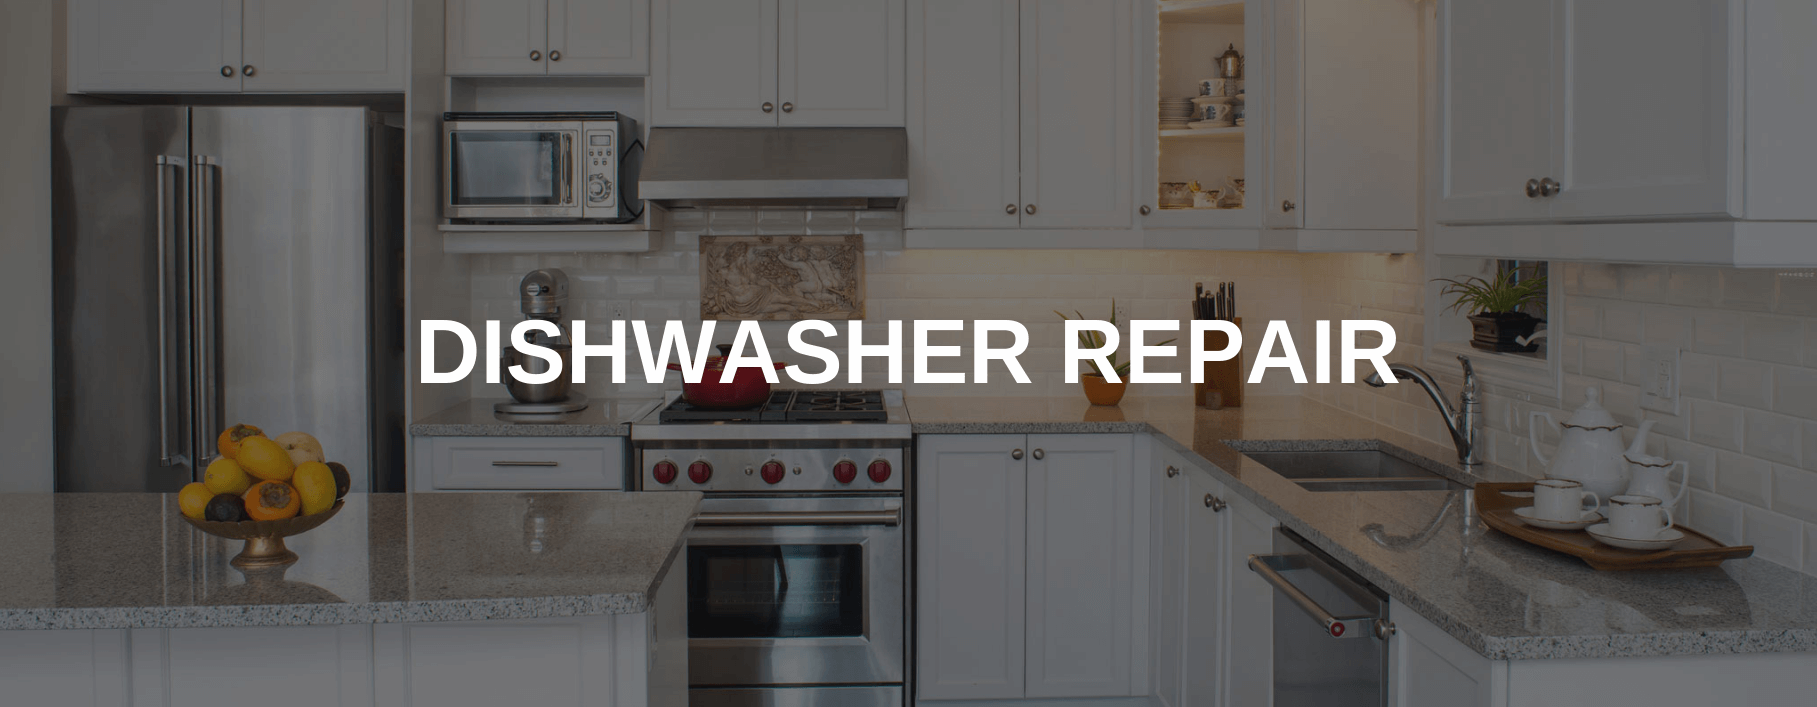 dishwasher repair huntington beach